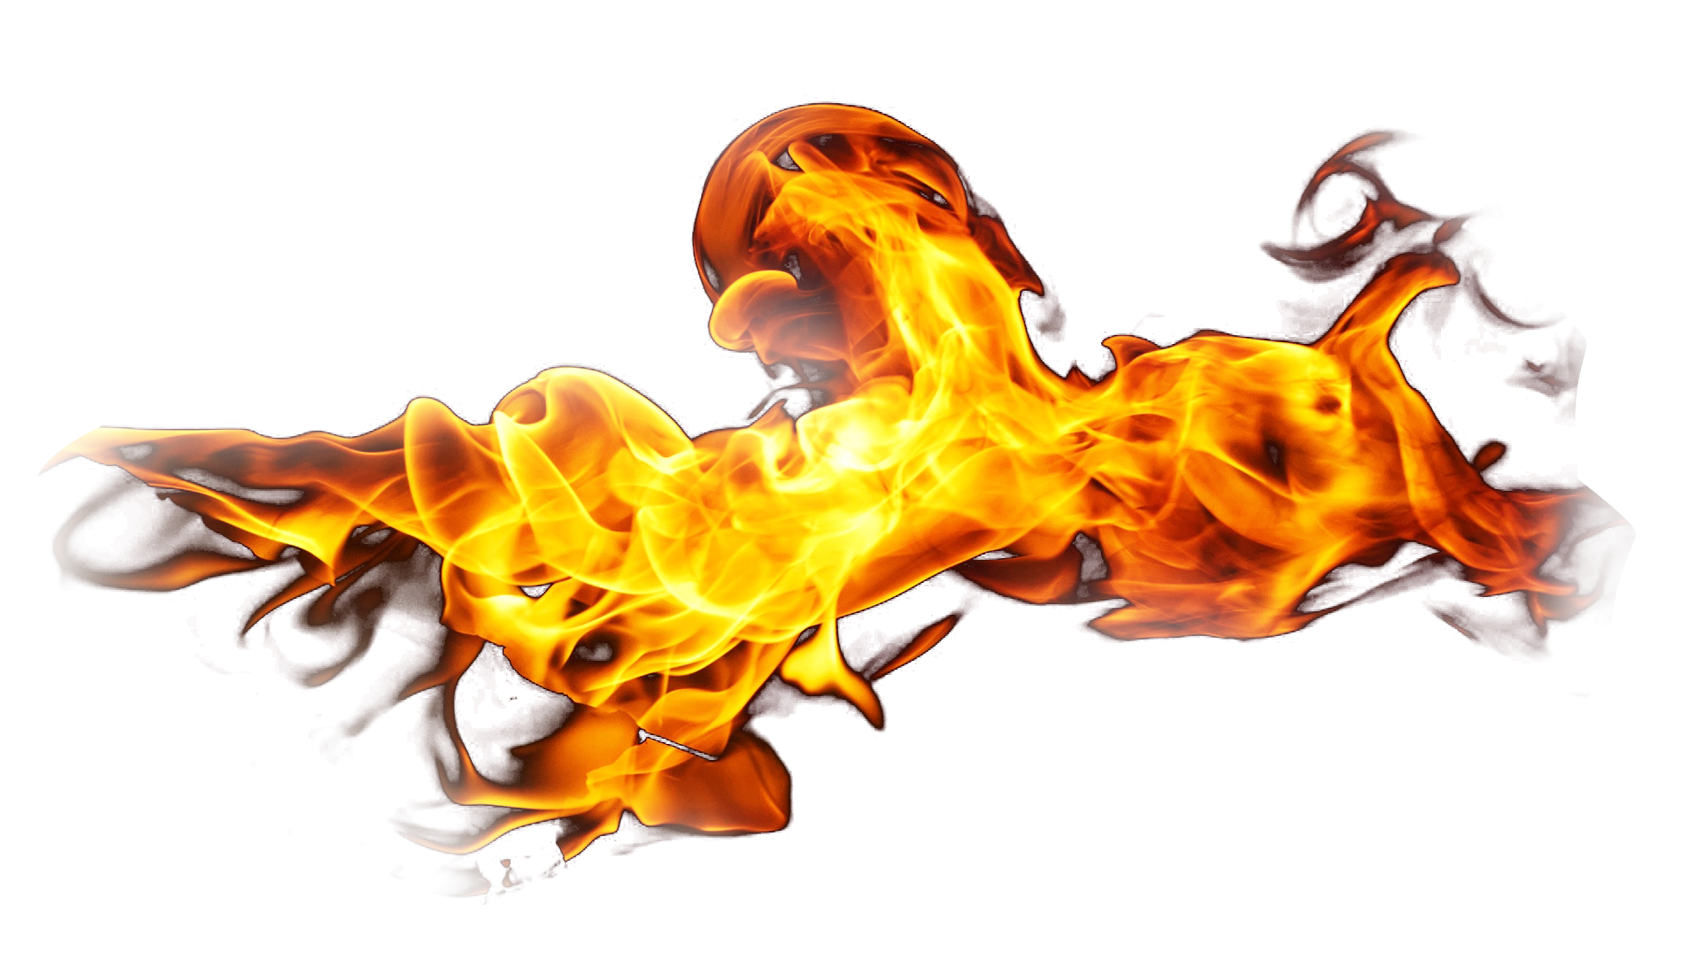 Clipart house on fire royalty free stock Fire Png Clipart Download #44294 - Free Icons and PNG Backgrounds royalty free stock